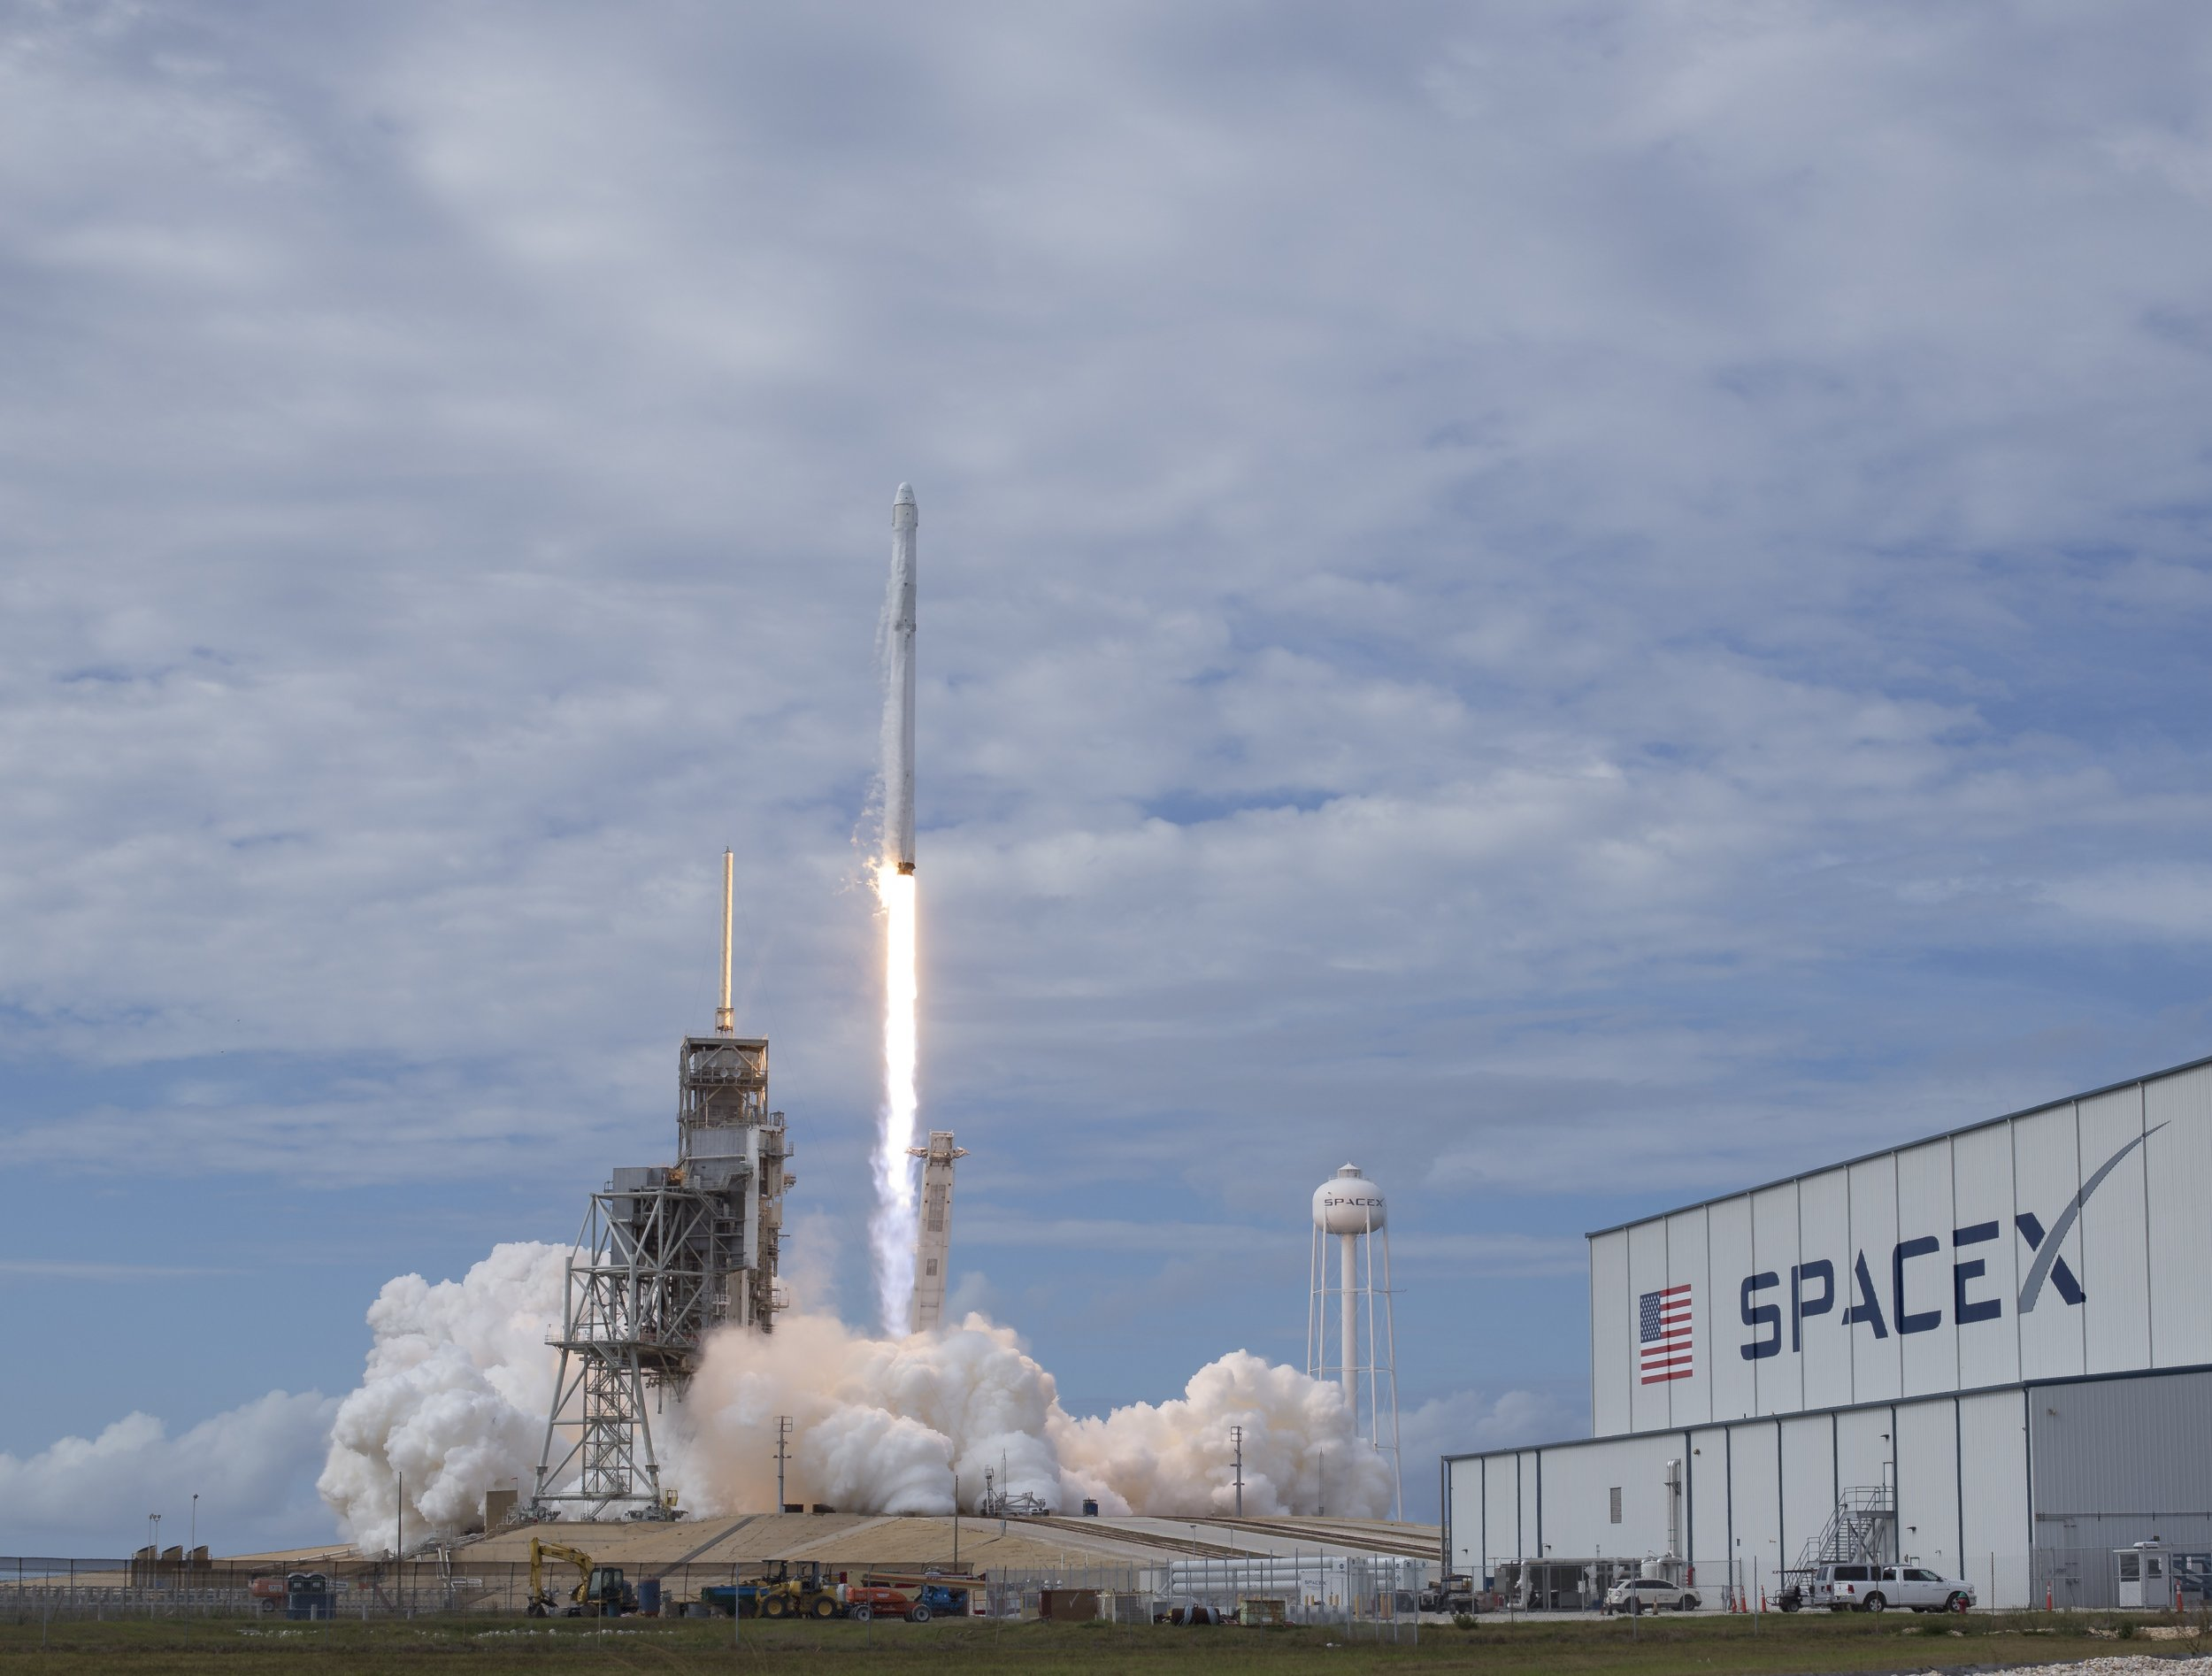 1_13_SpaceX Dragon